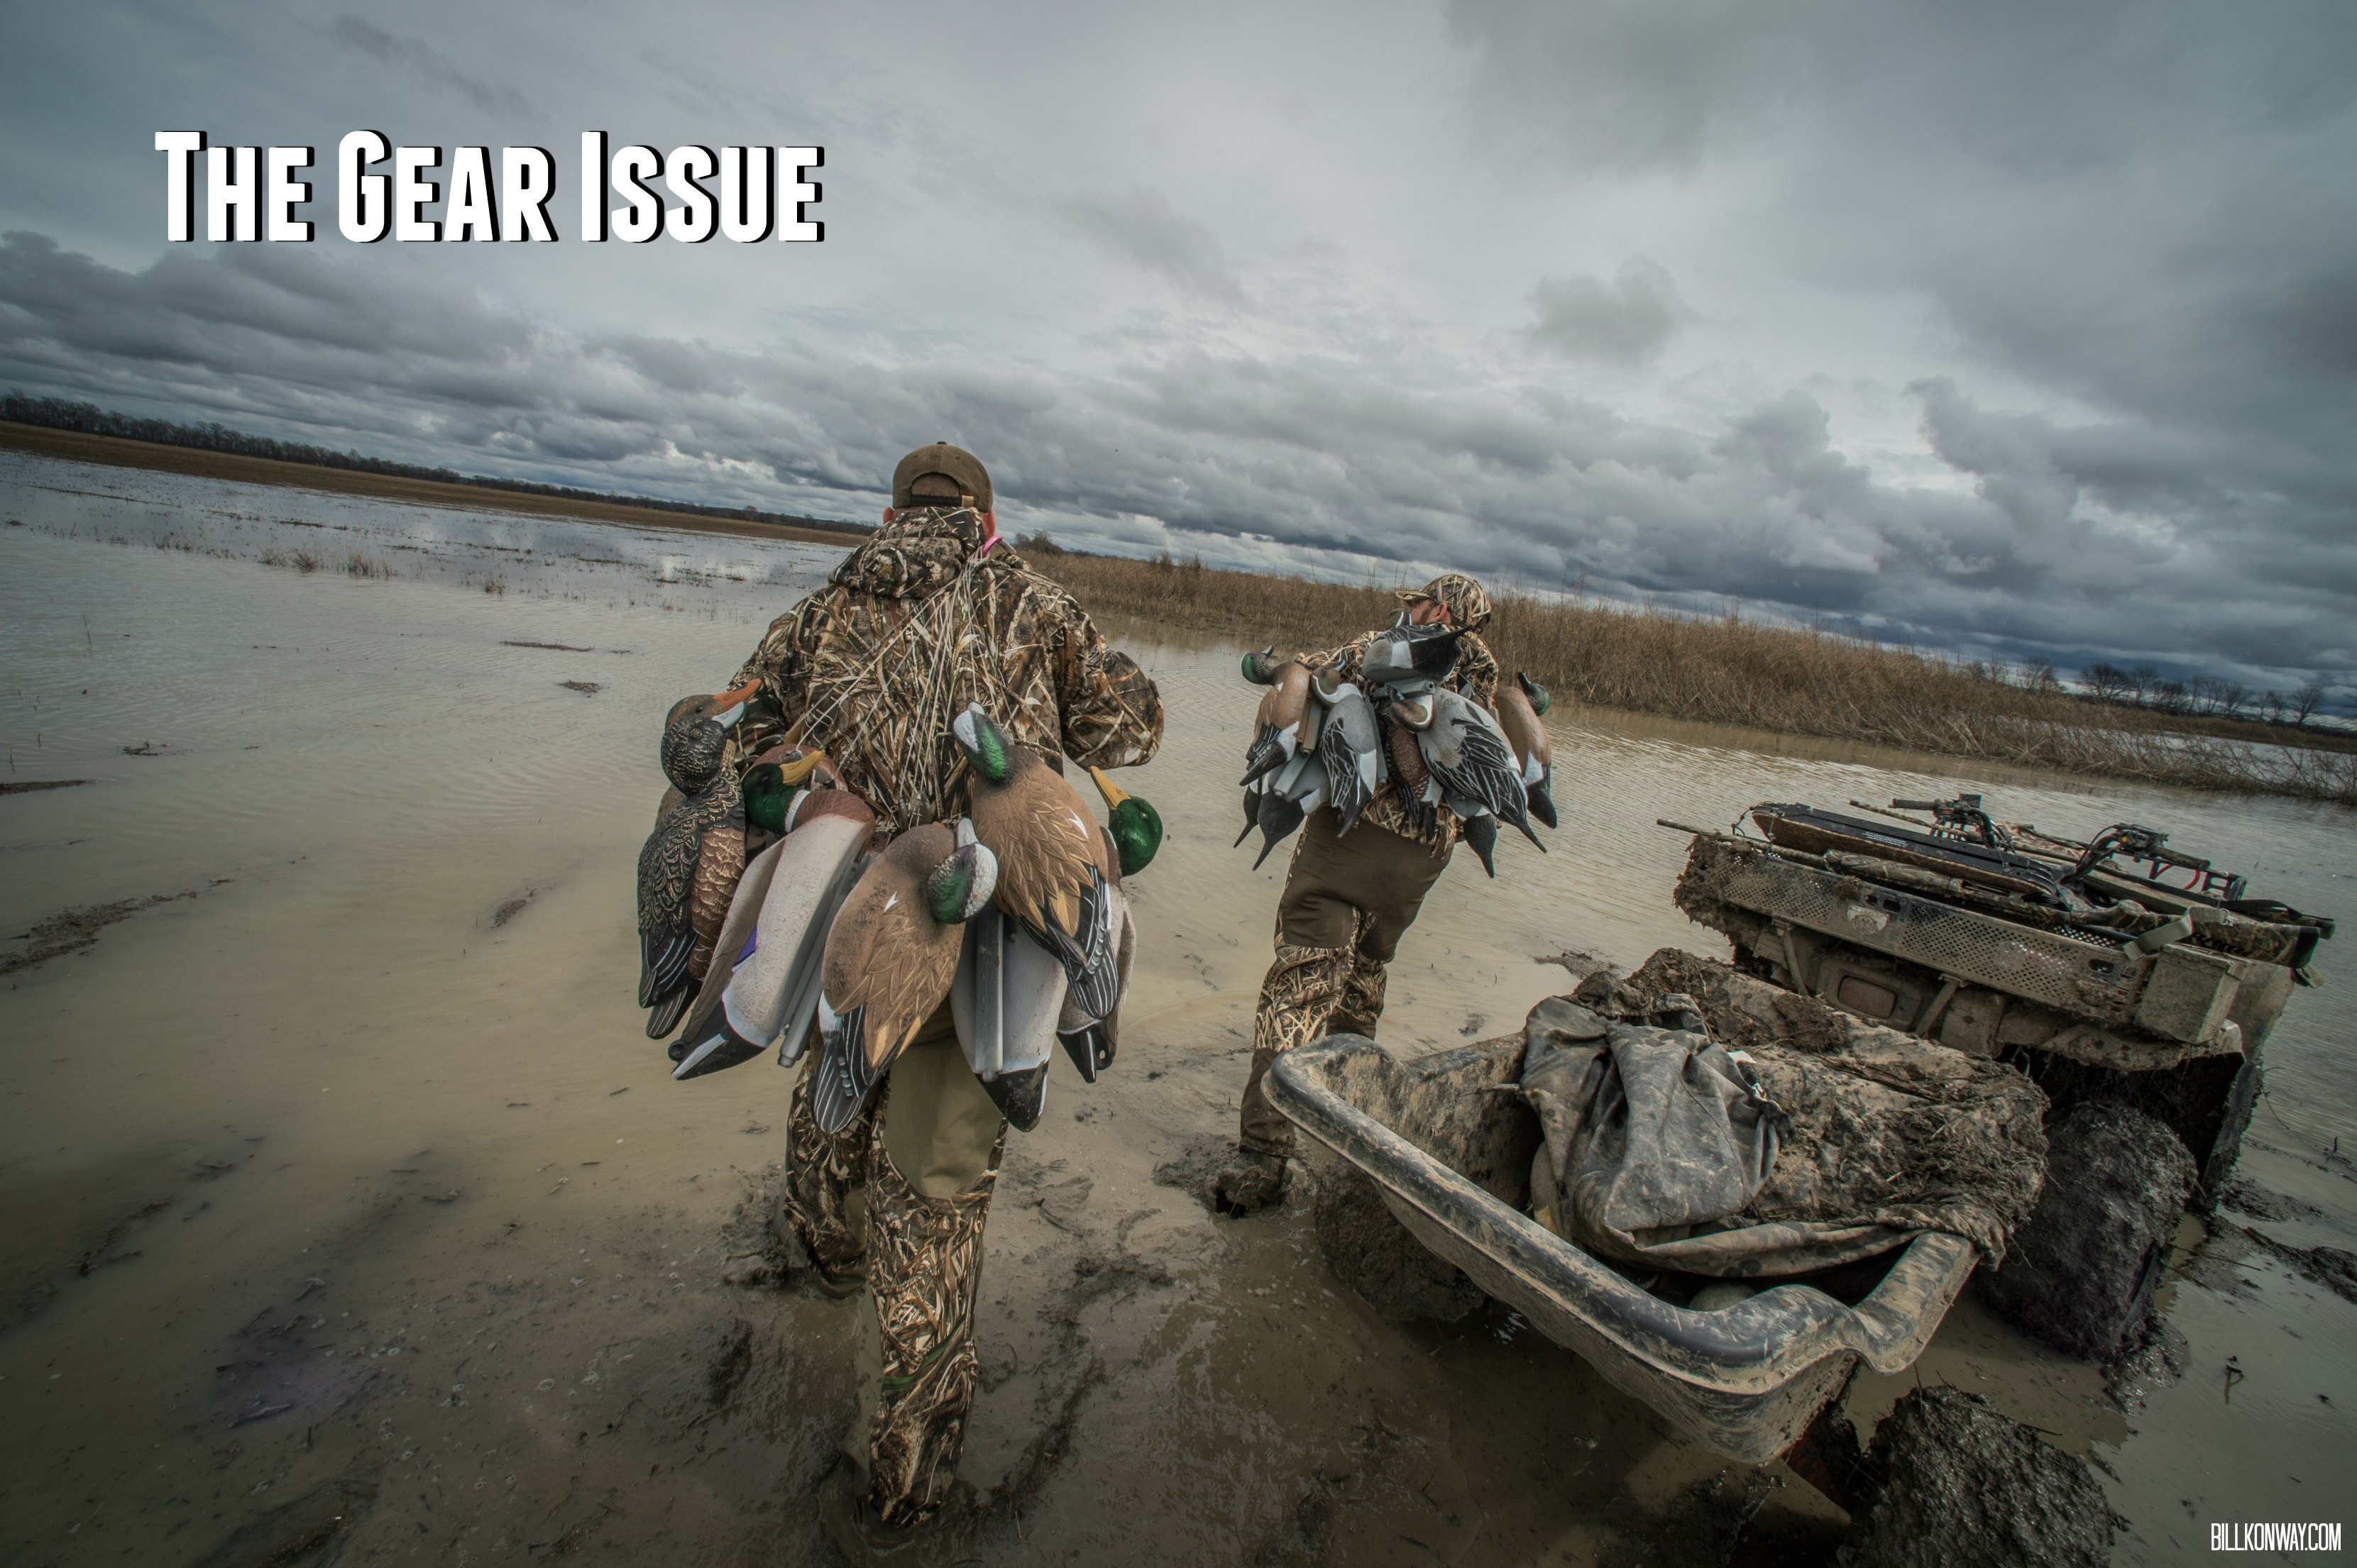 The Gear Issue